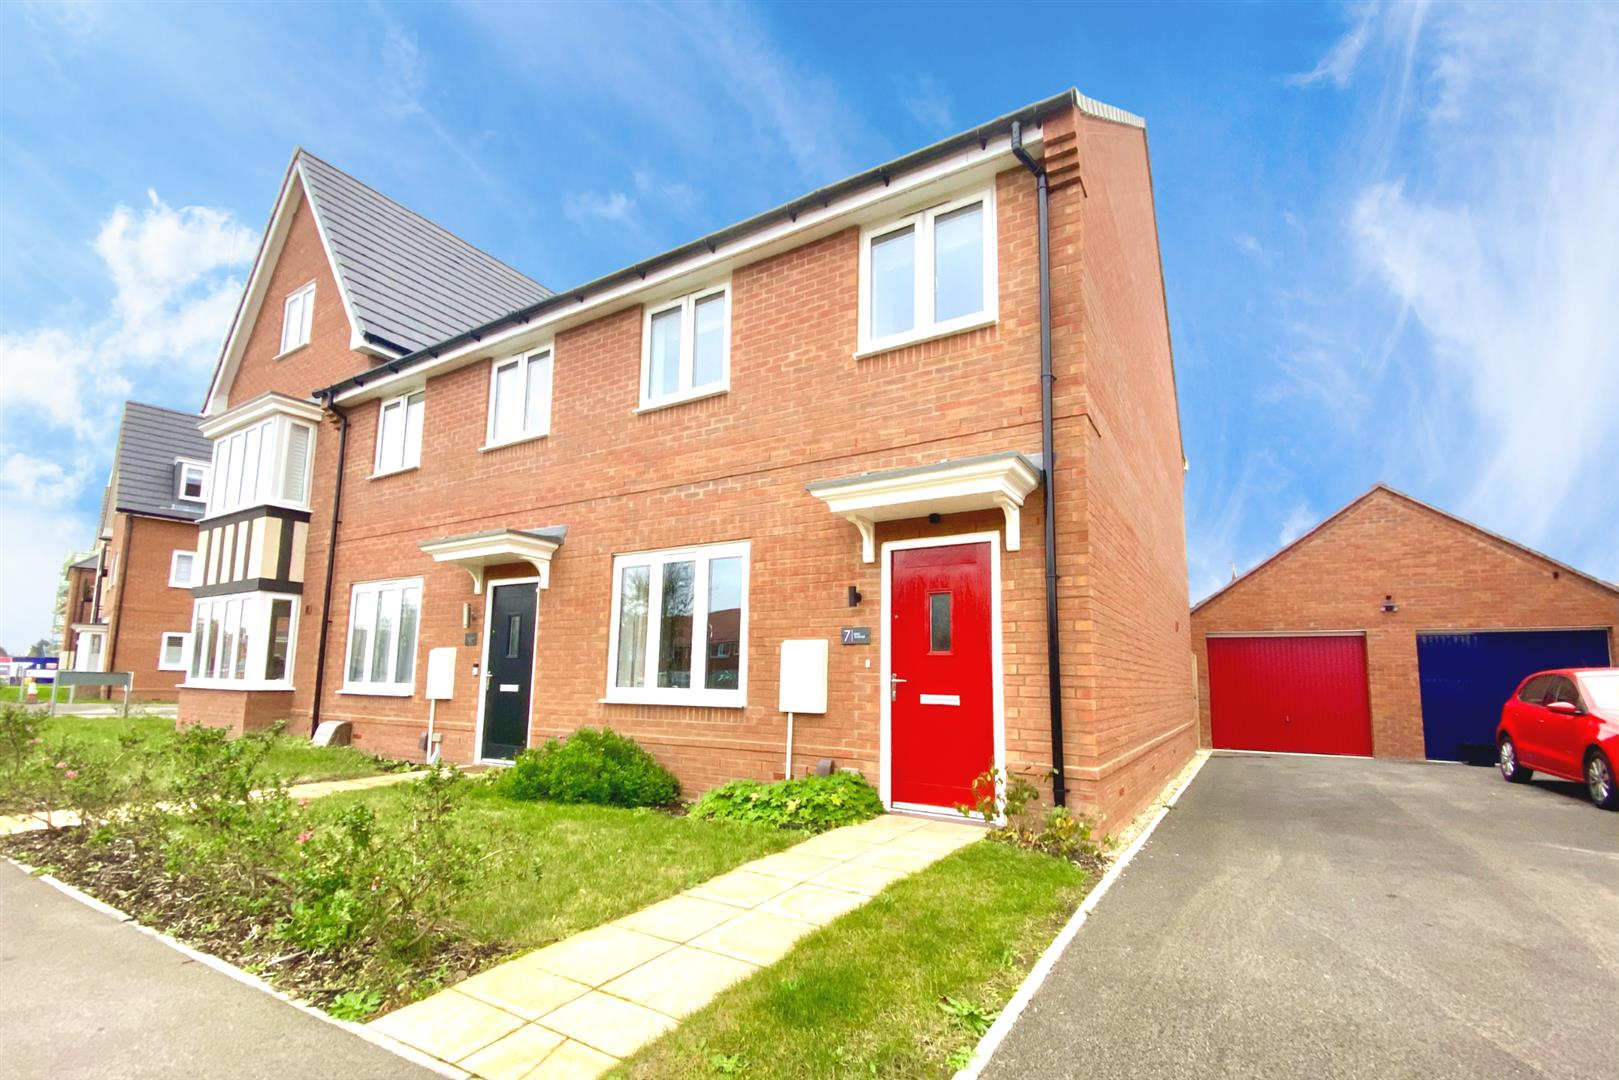 2 bed end of terrace for sale in Shinfield  - Property Image 1